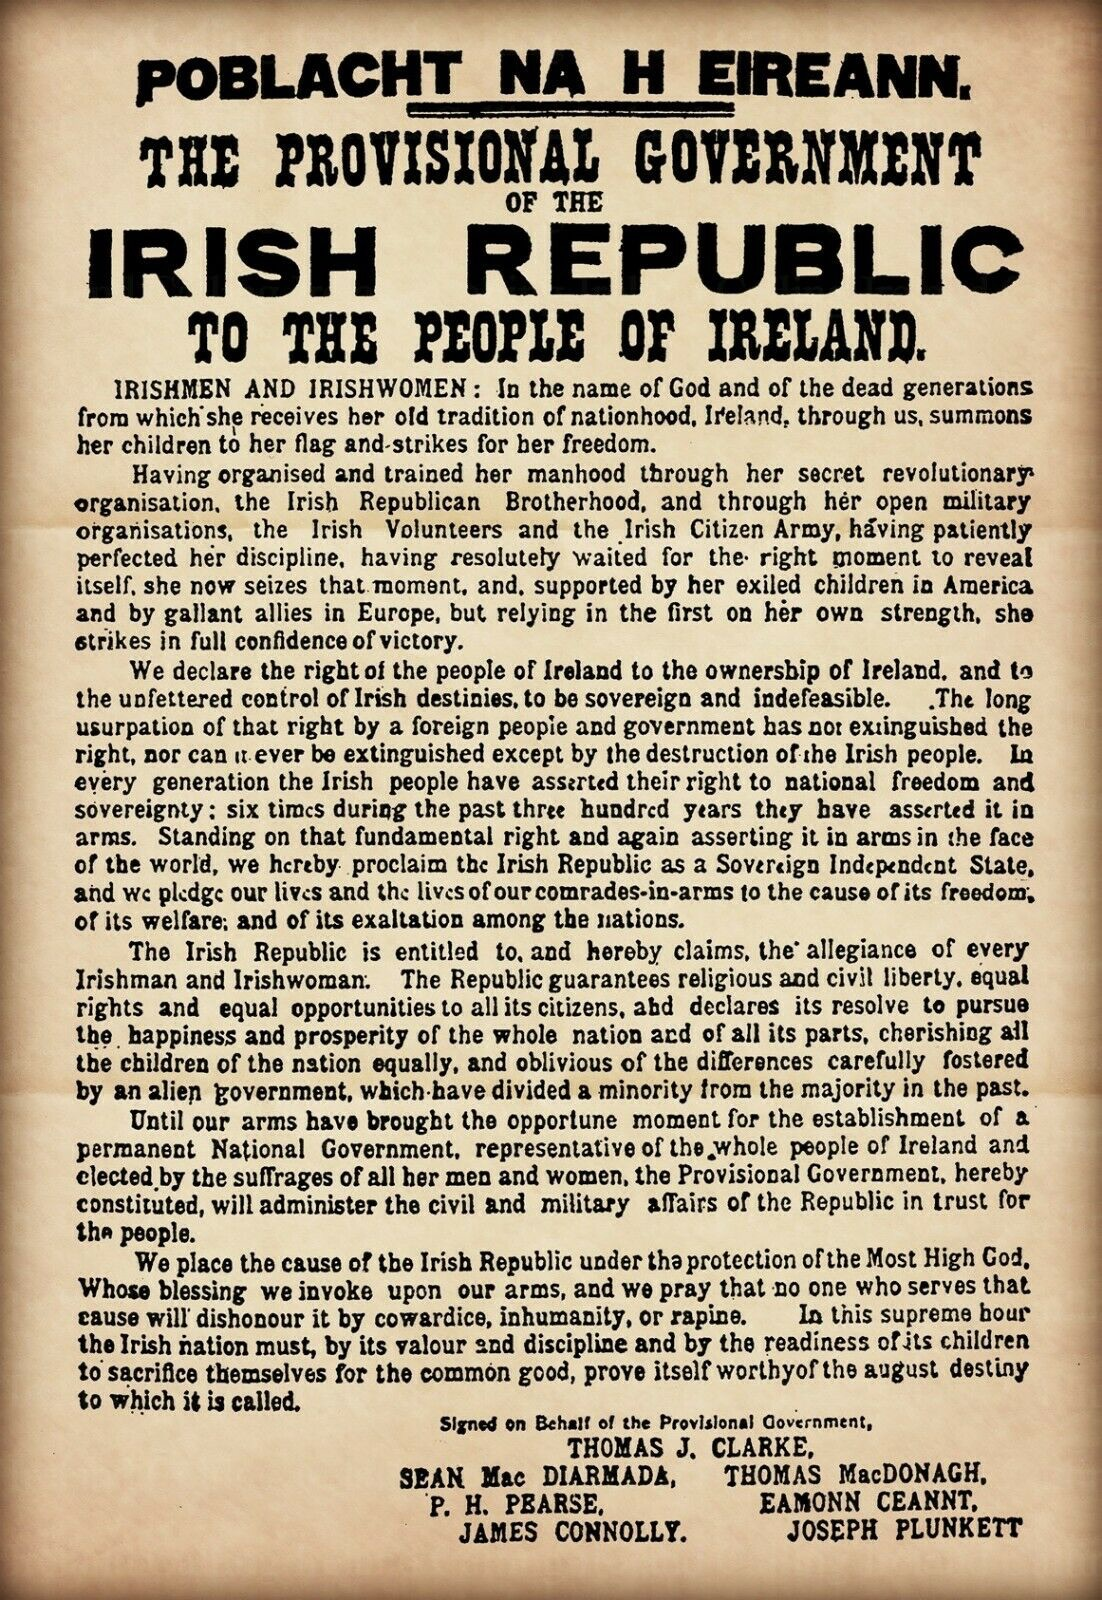 1916 Proclamation Poster